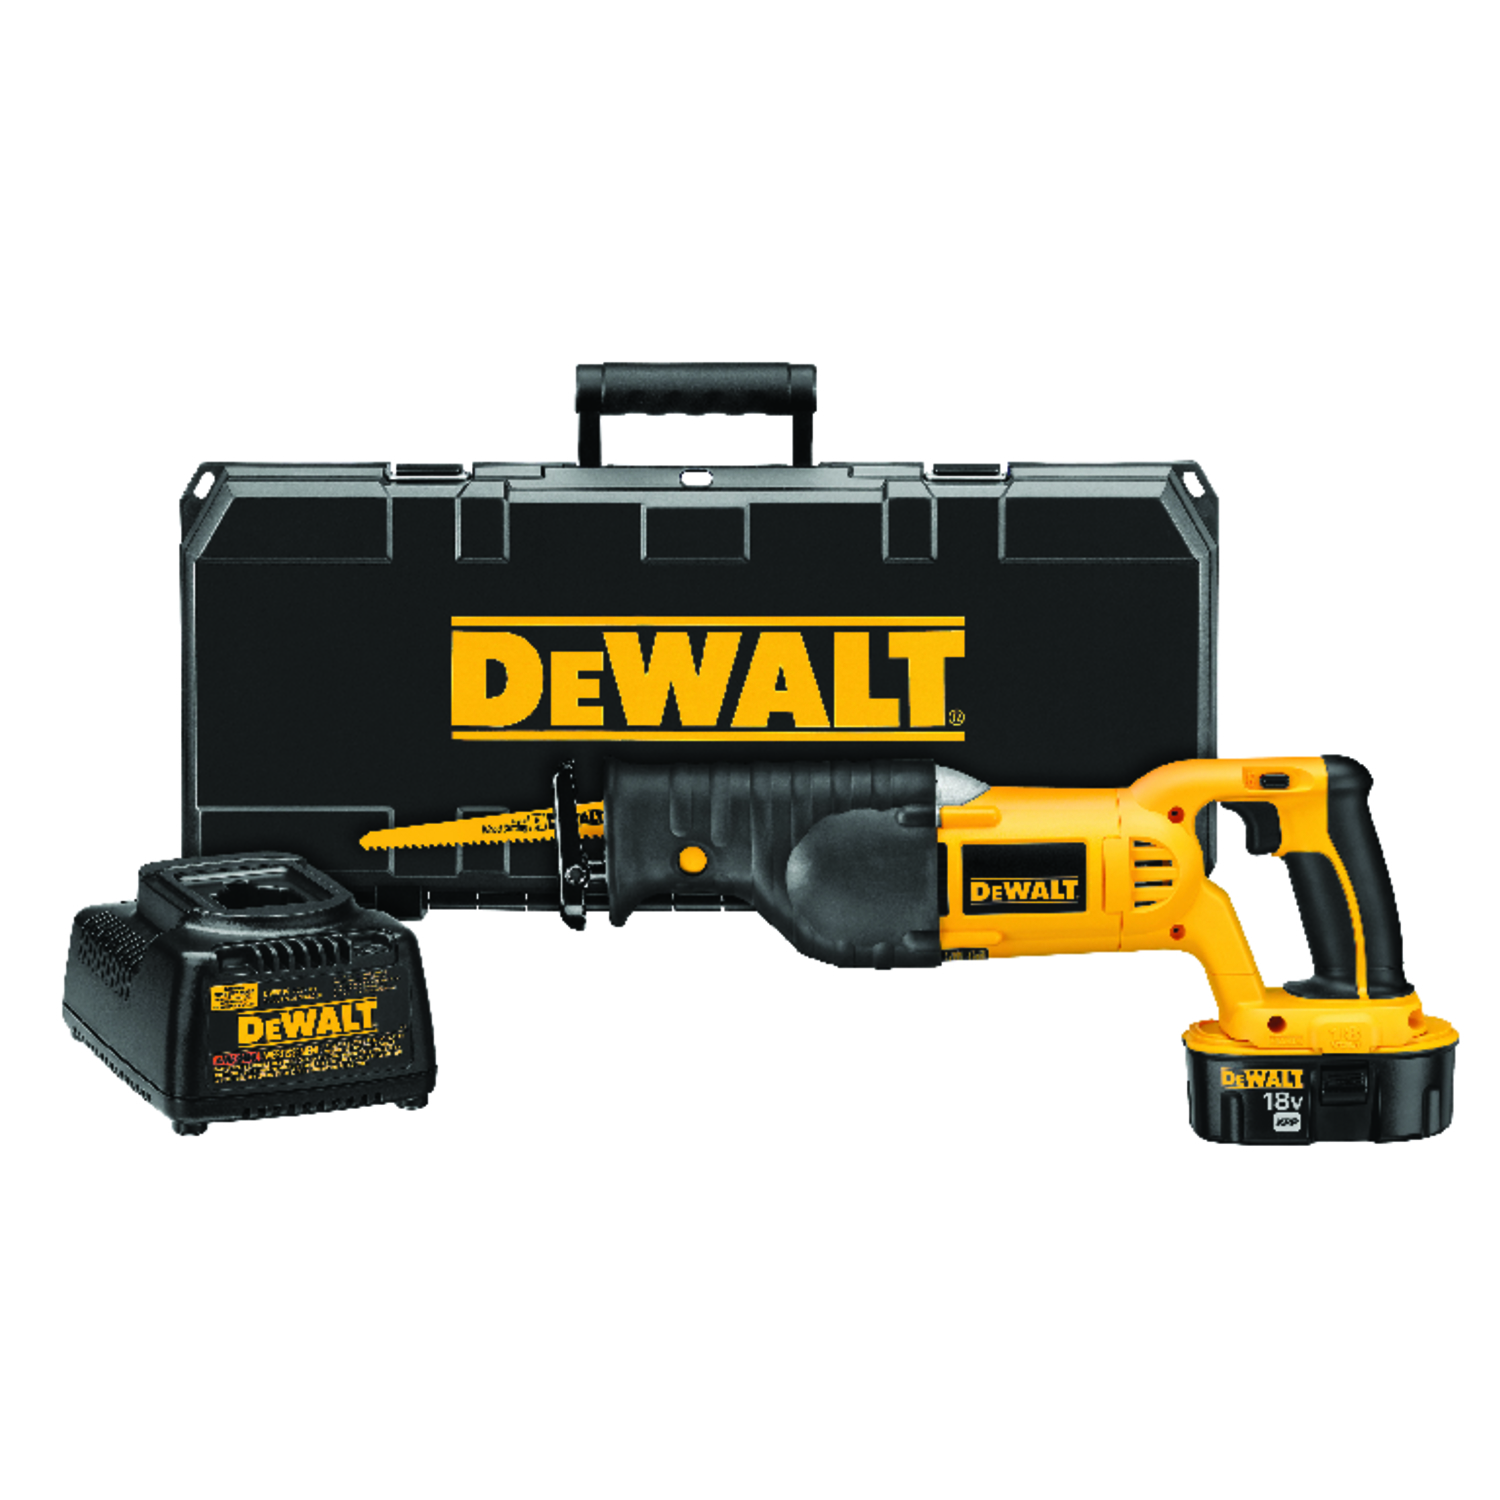 DeWalt  XRP  1-1/8 in. Reciprocating Saw Kit  18 volts 3000 spm Cordless  Kit